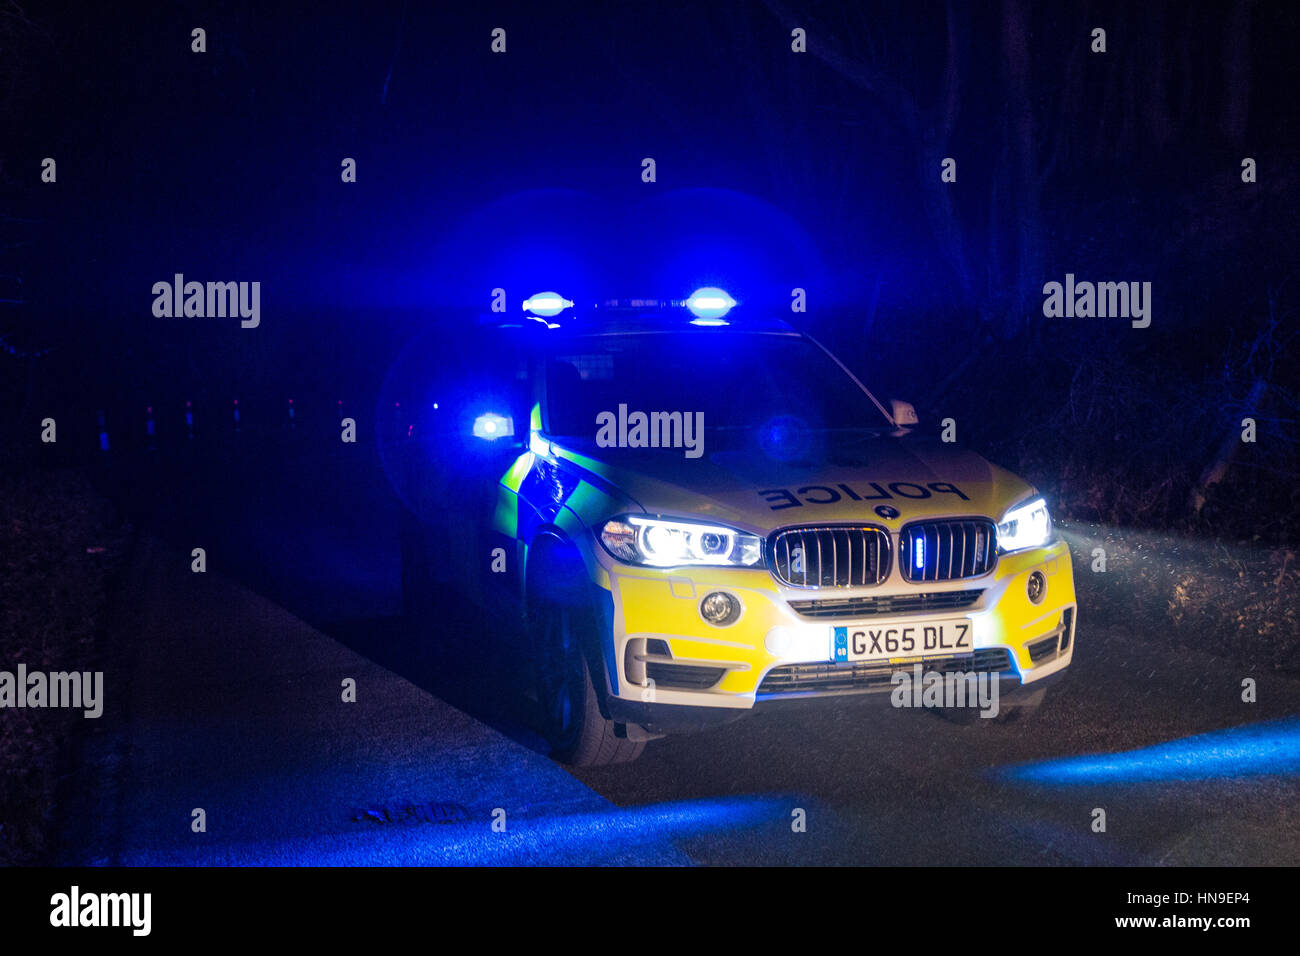 Sussex Police BMW X5 lit up at night. - Stock Image